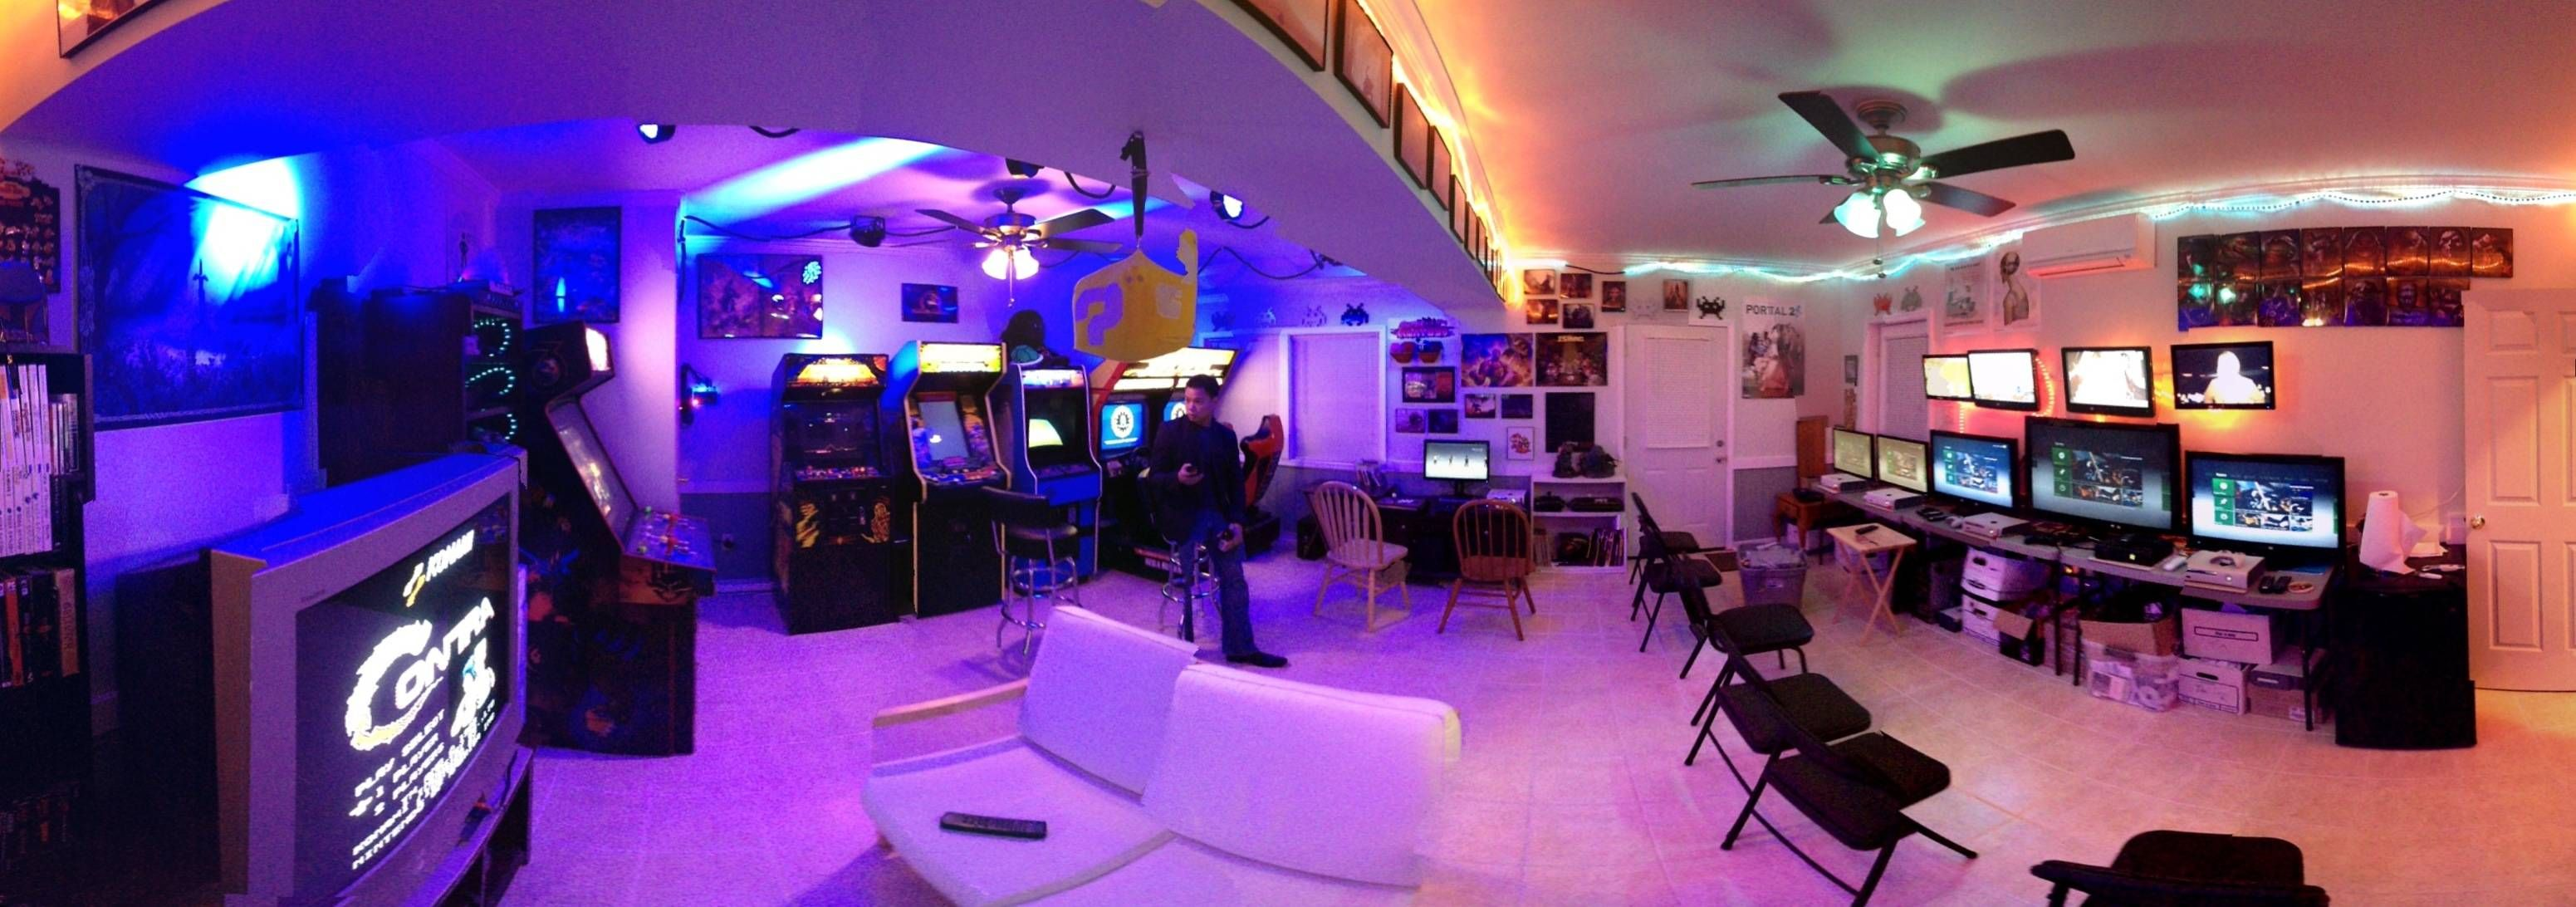 Dream house game room - Find This Pin And More On Gaming Room By Koobeens